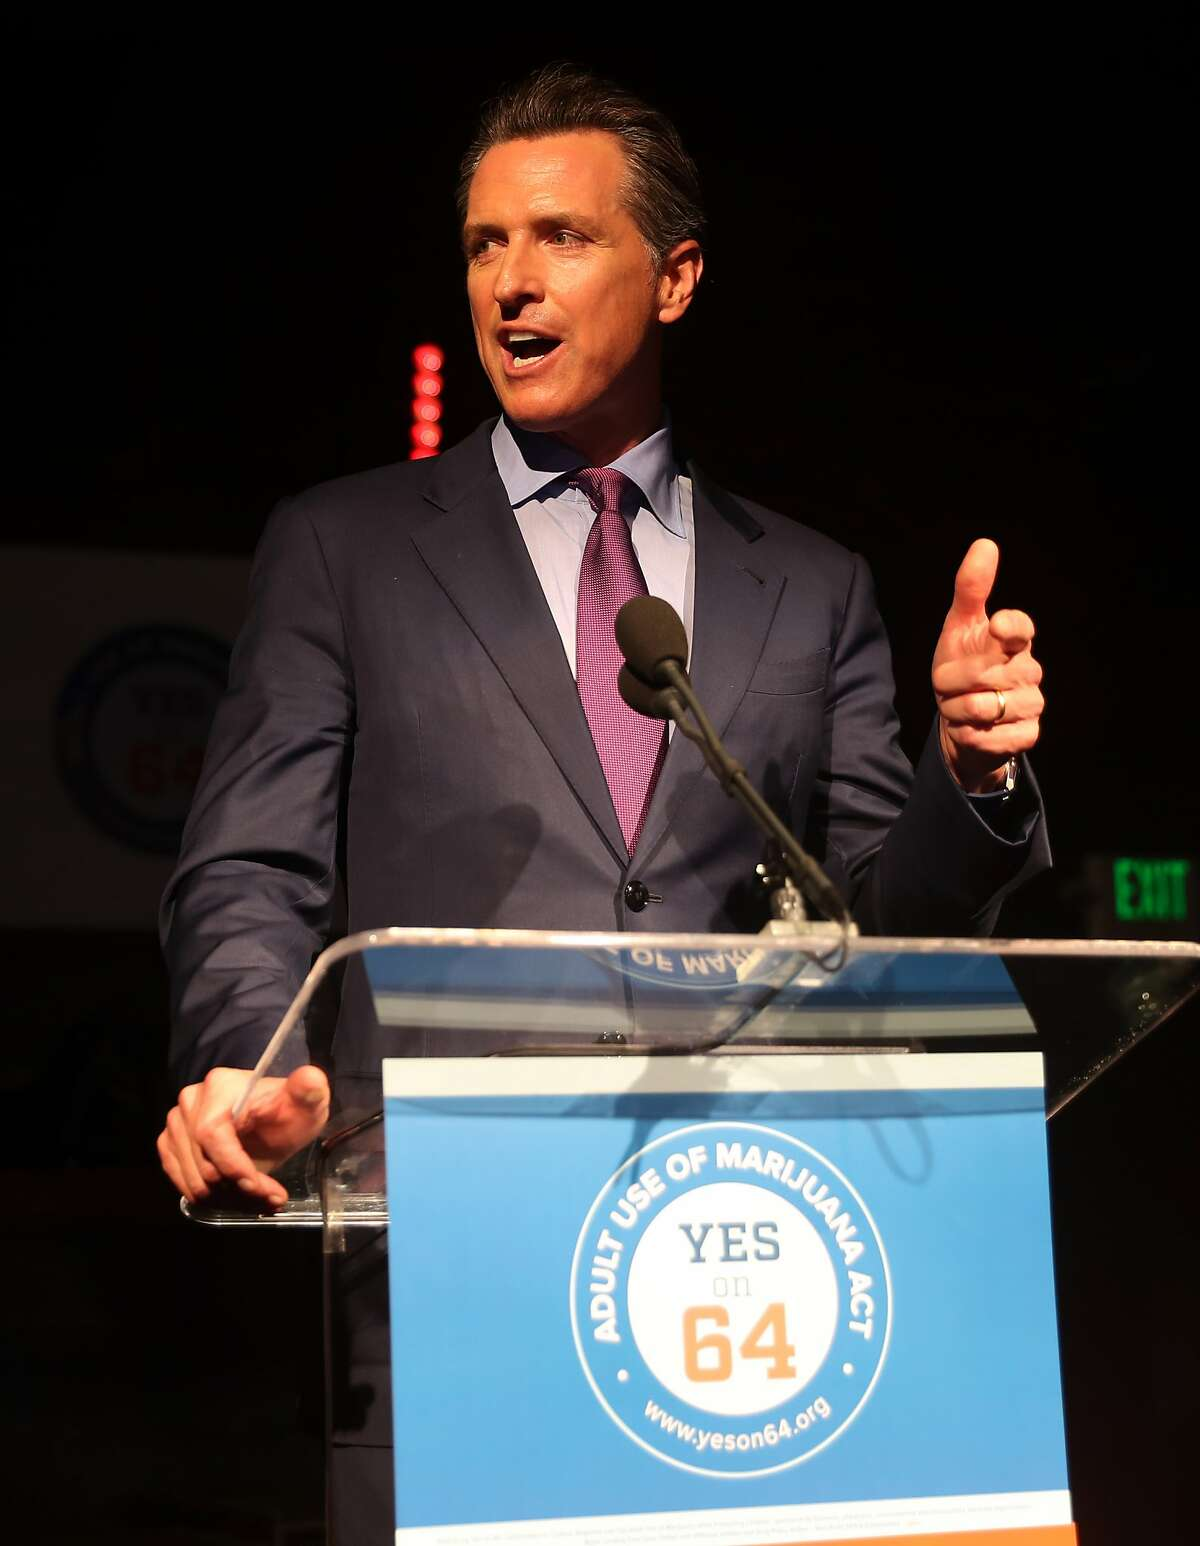 California Lieutenant Governor Gavin Newsom talks about the passing of Propositions 63 and 64 during during Democratic election night party at Verso in San Francisco, Calif., on Tuesday, November 8, 2016.